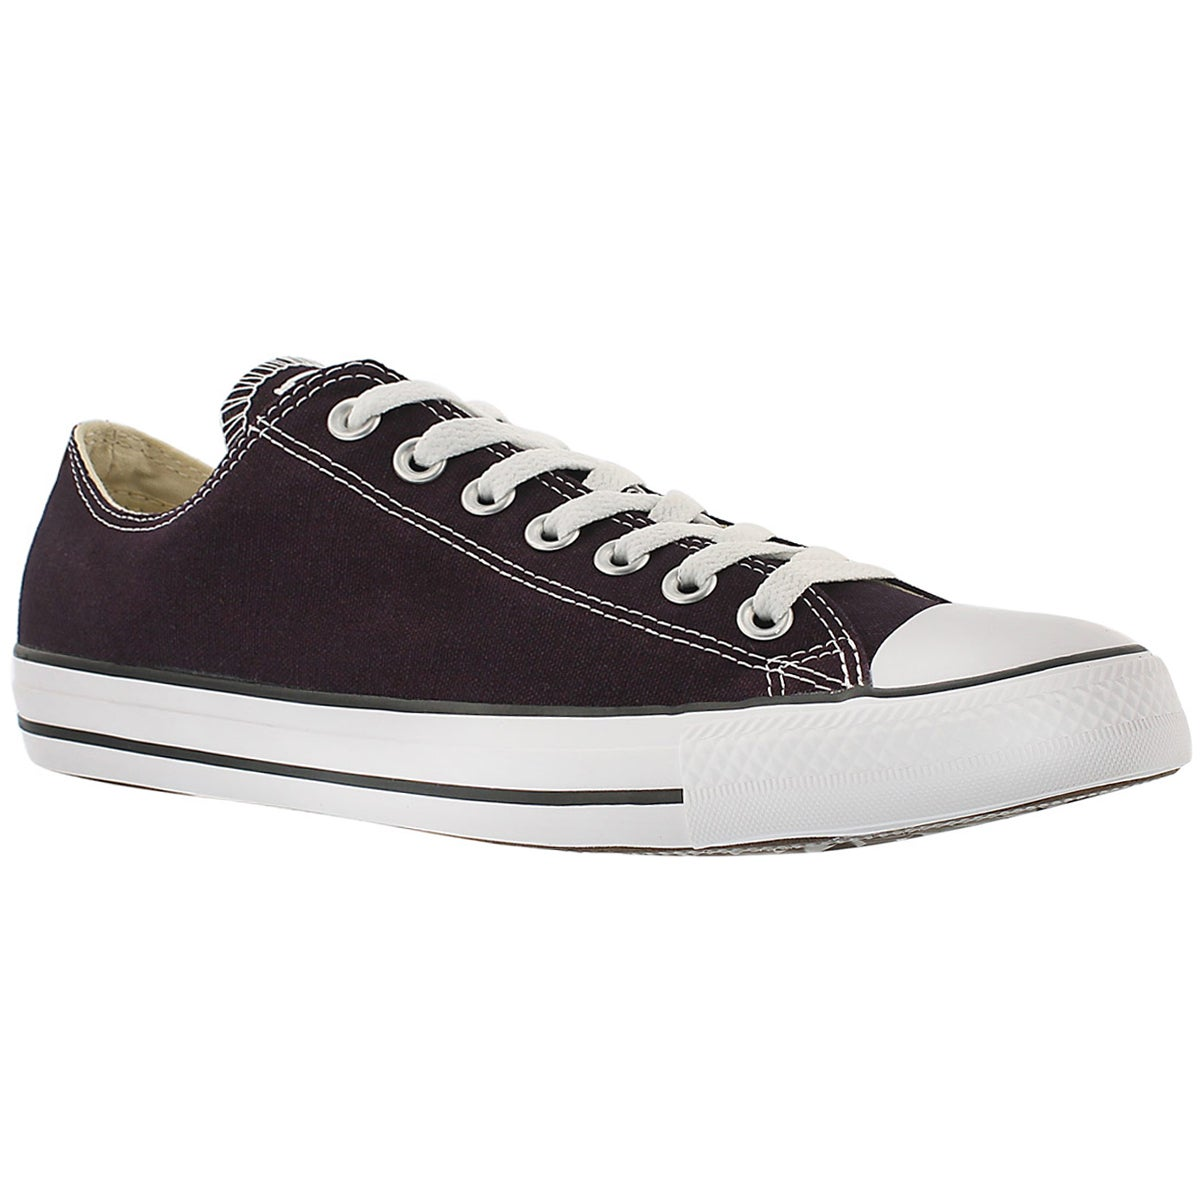 Mns CT A/S SeasonalCanvas blk chry ox